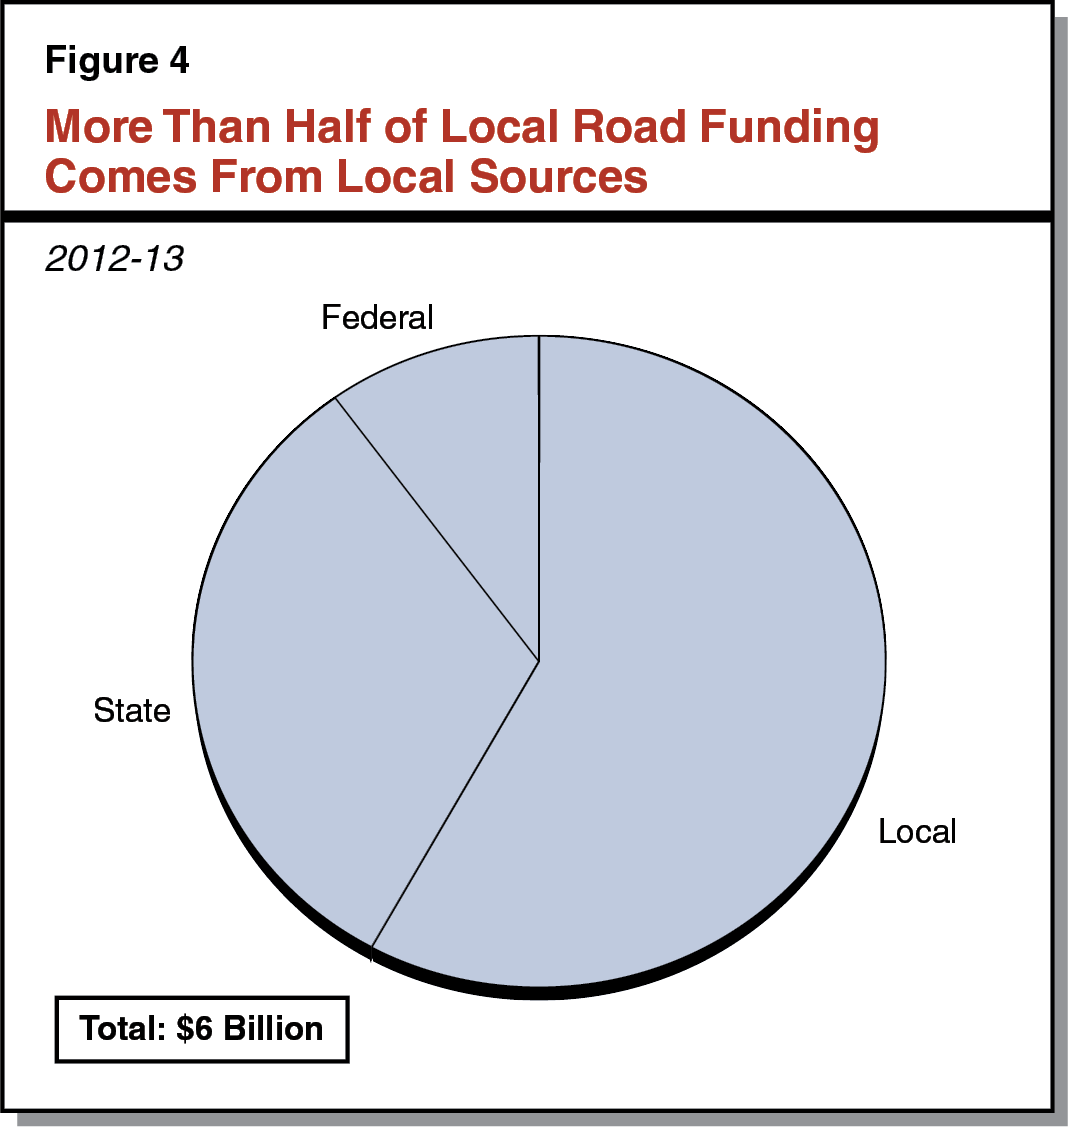 Figure 4 - More Than Half of Local Road Funding Comes From Local Sources